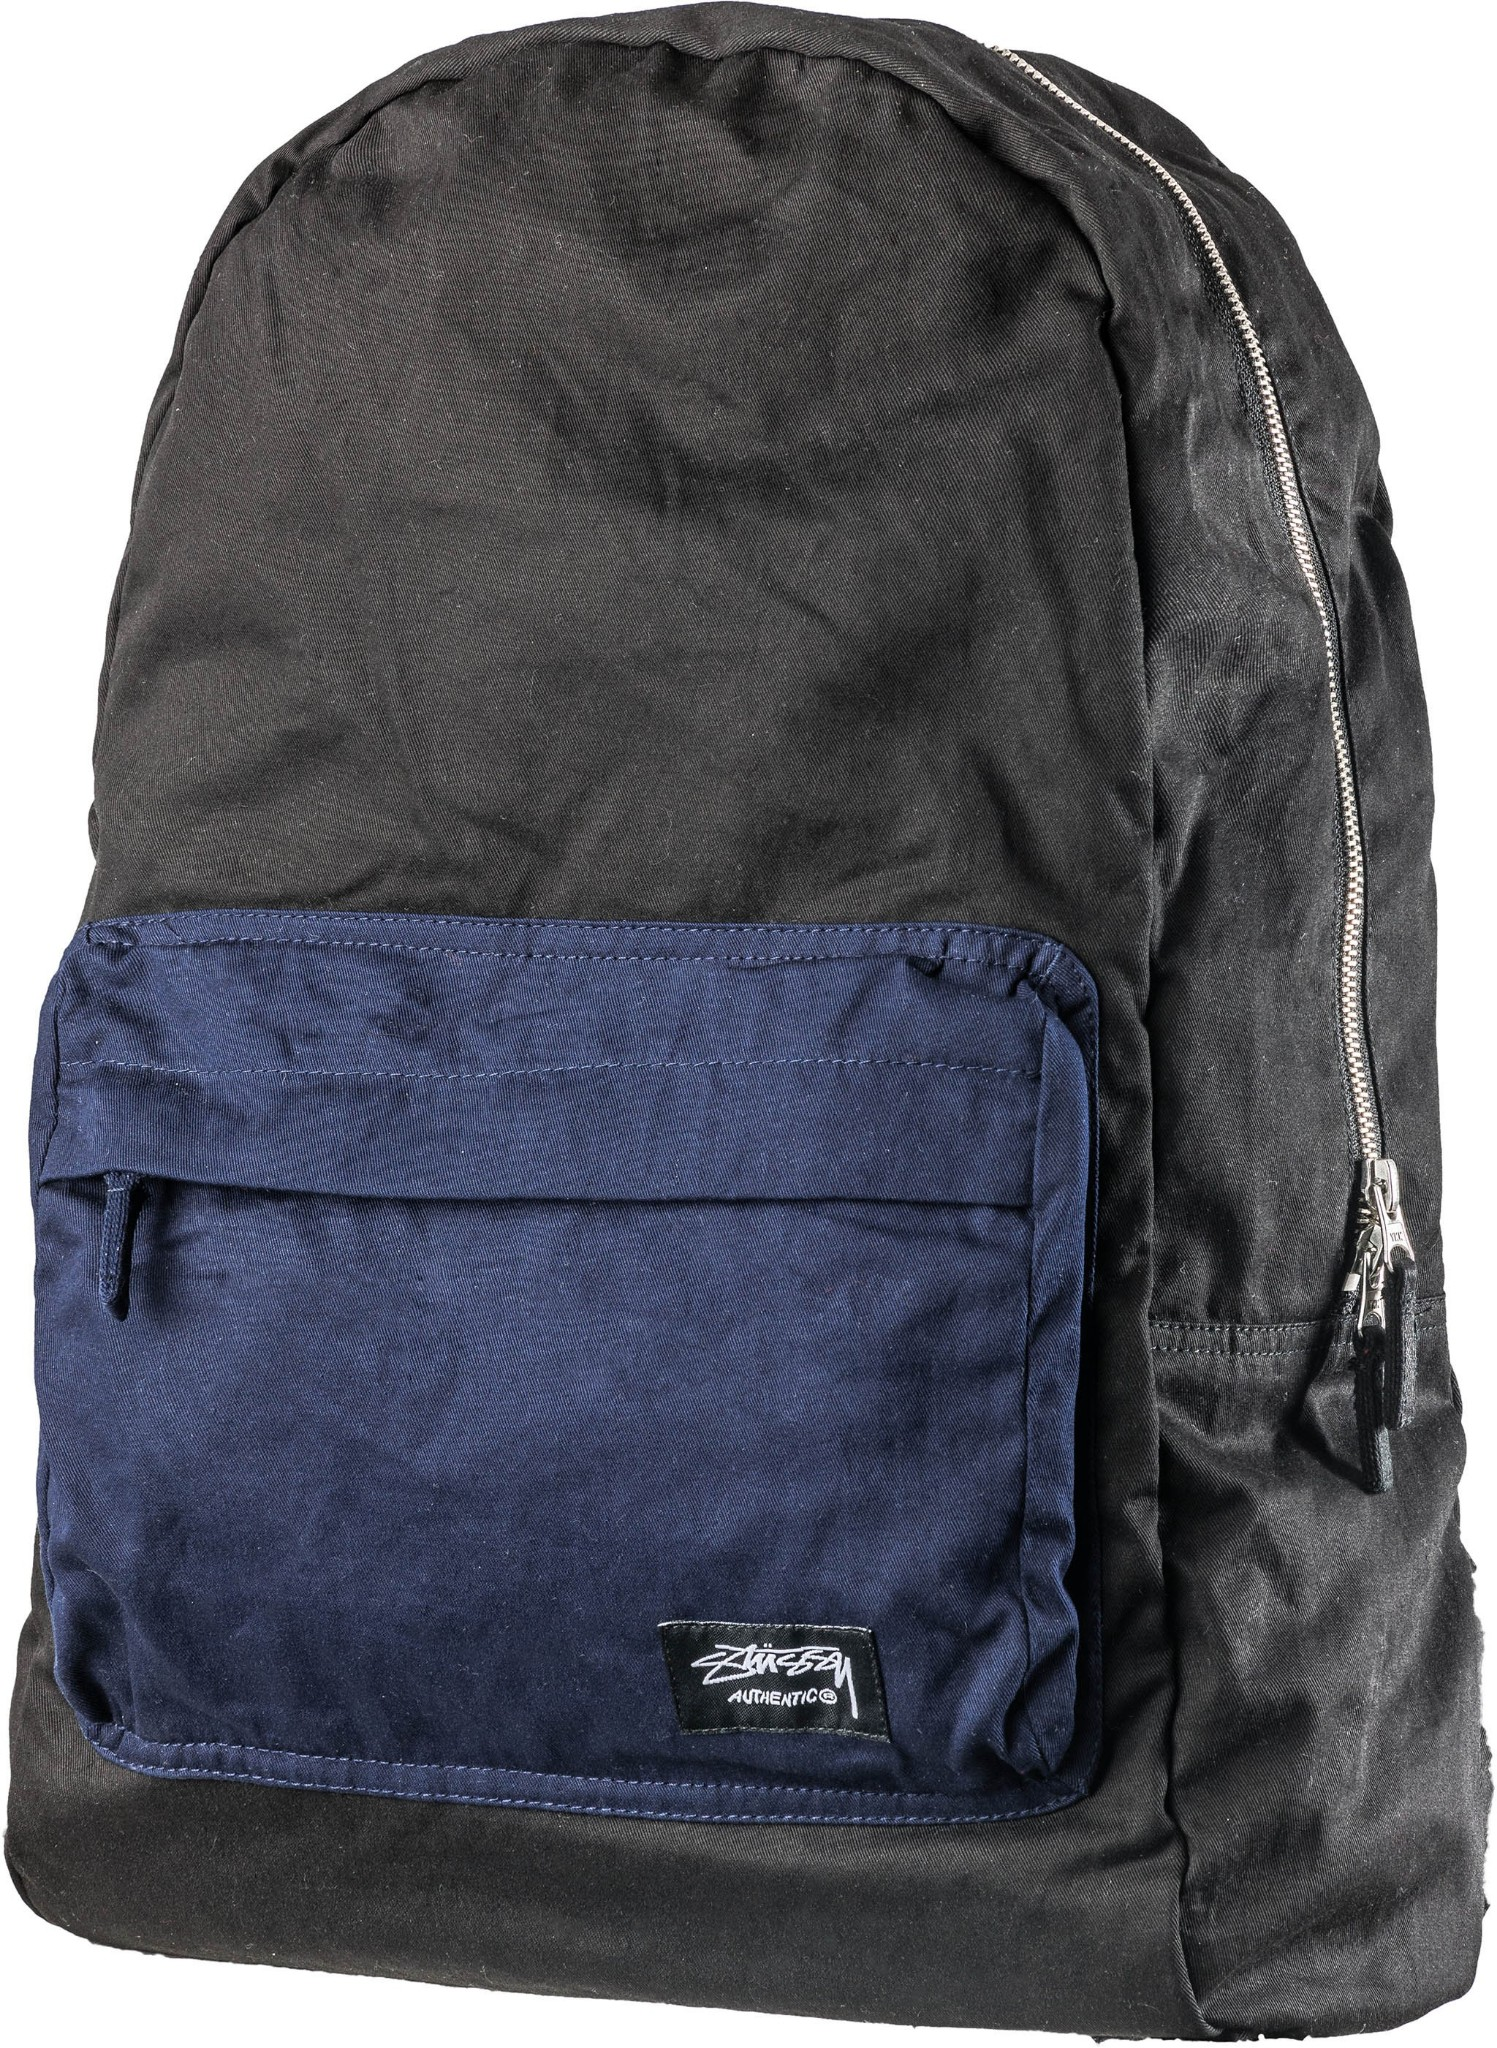 Stussy Backpack Contrast Black Navy Basic Beachpack FREE POST Skate School Bag